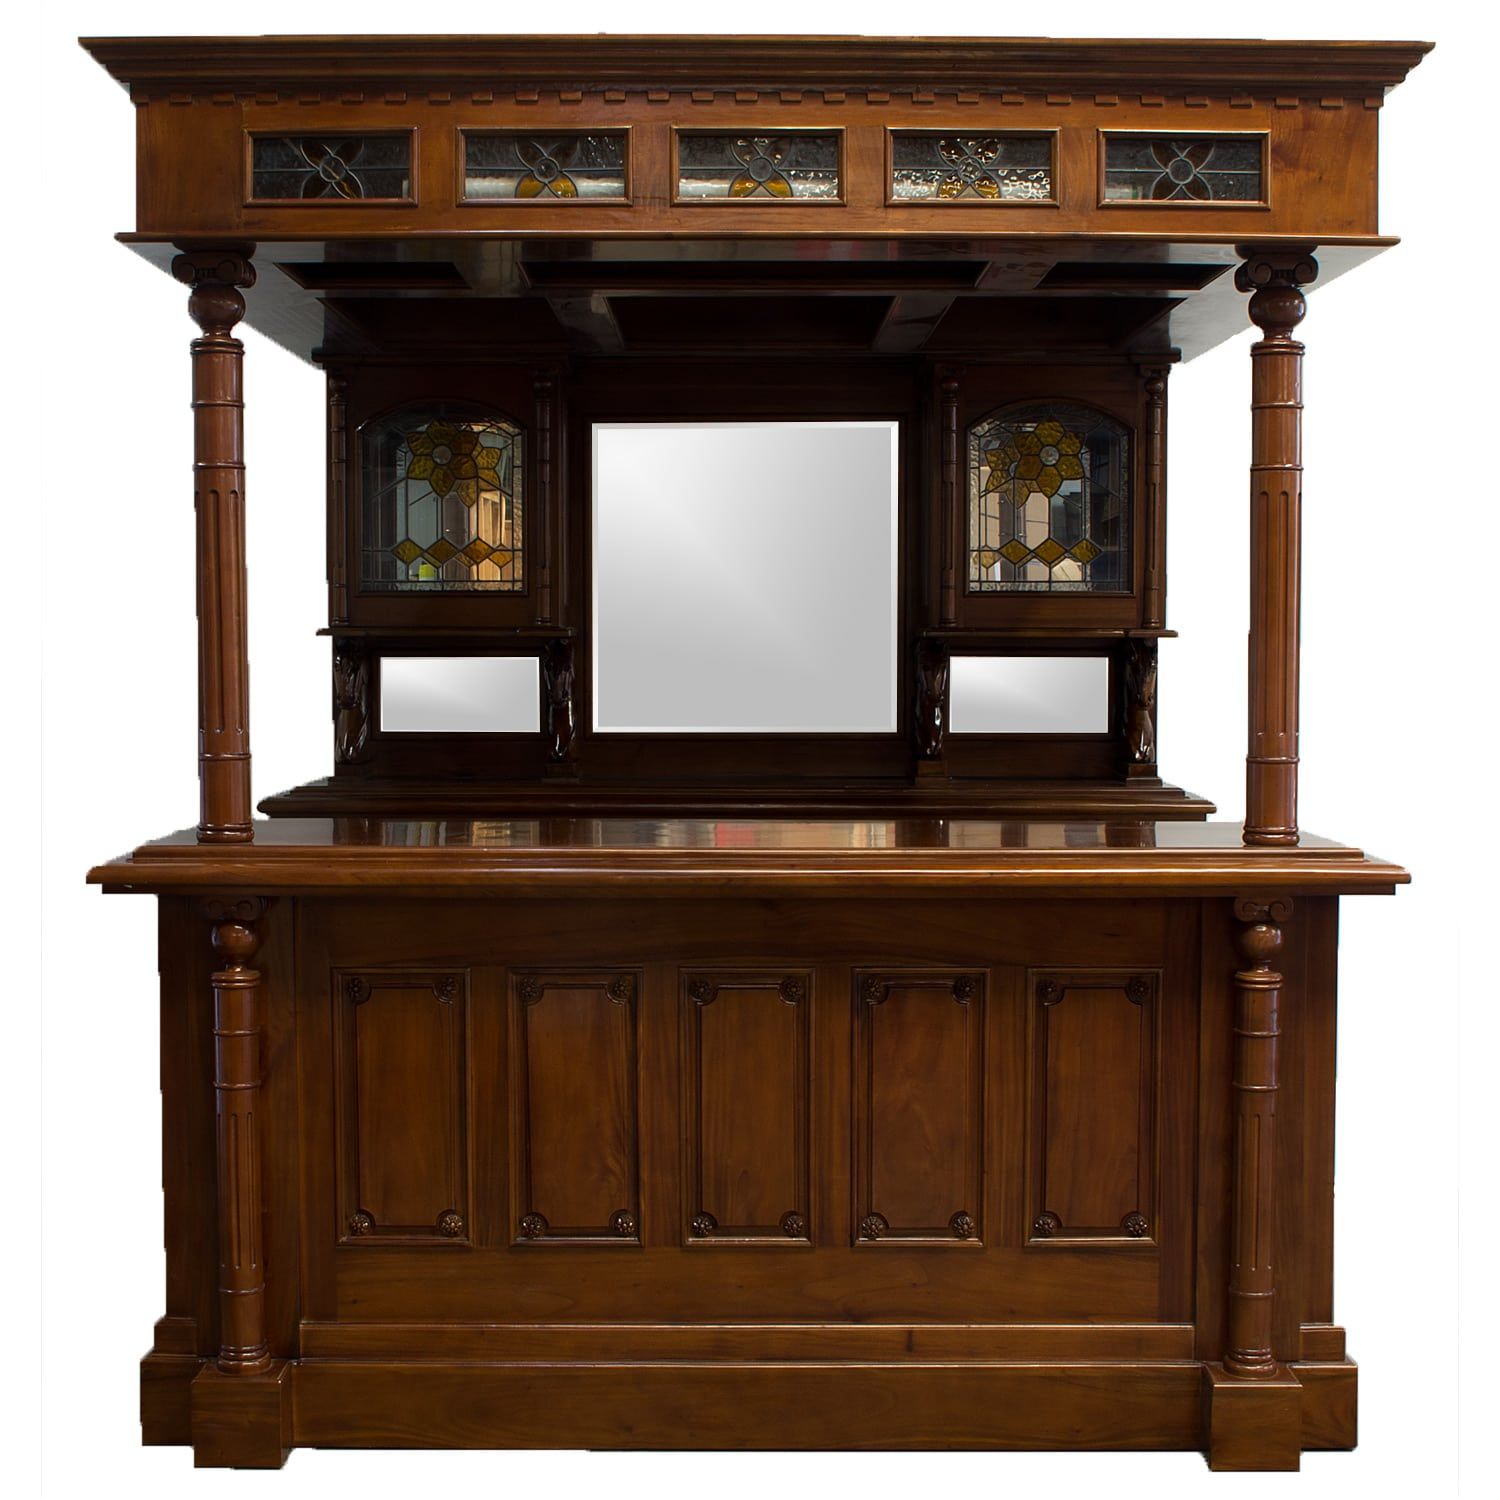 Home Bar Furniture English Or Dublin Irish Canopy Home Bar Tavern Old Antiique Style Pub Counter